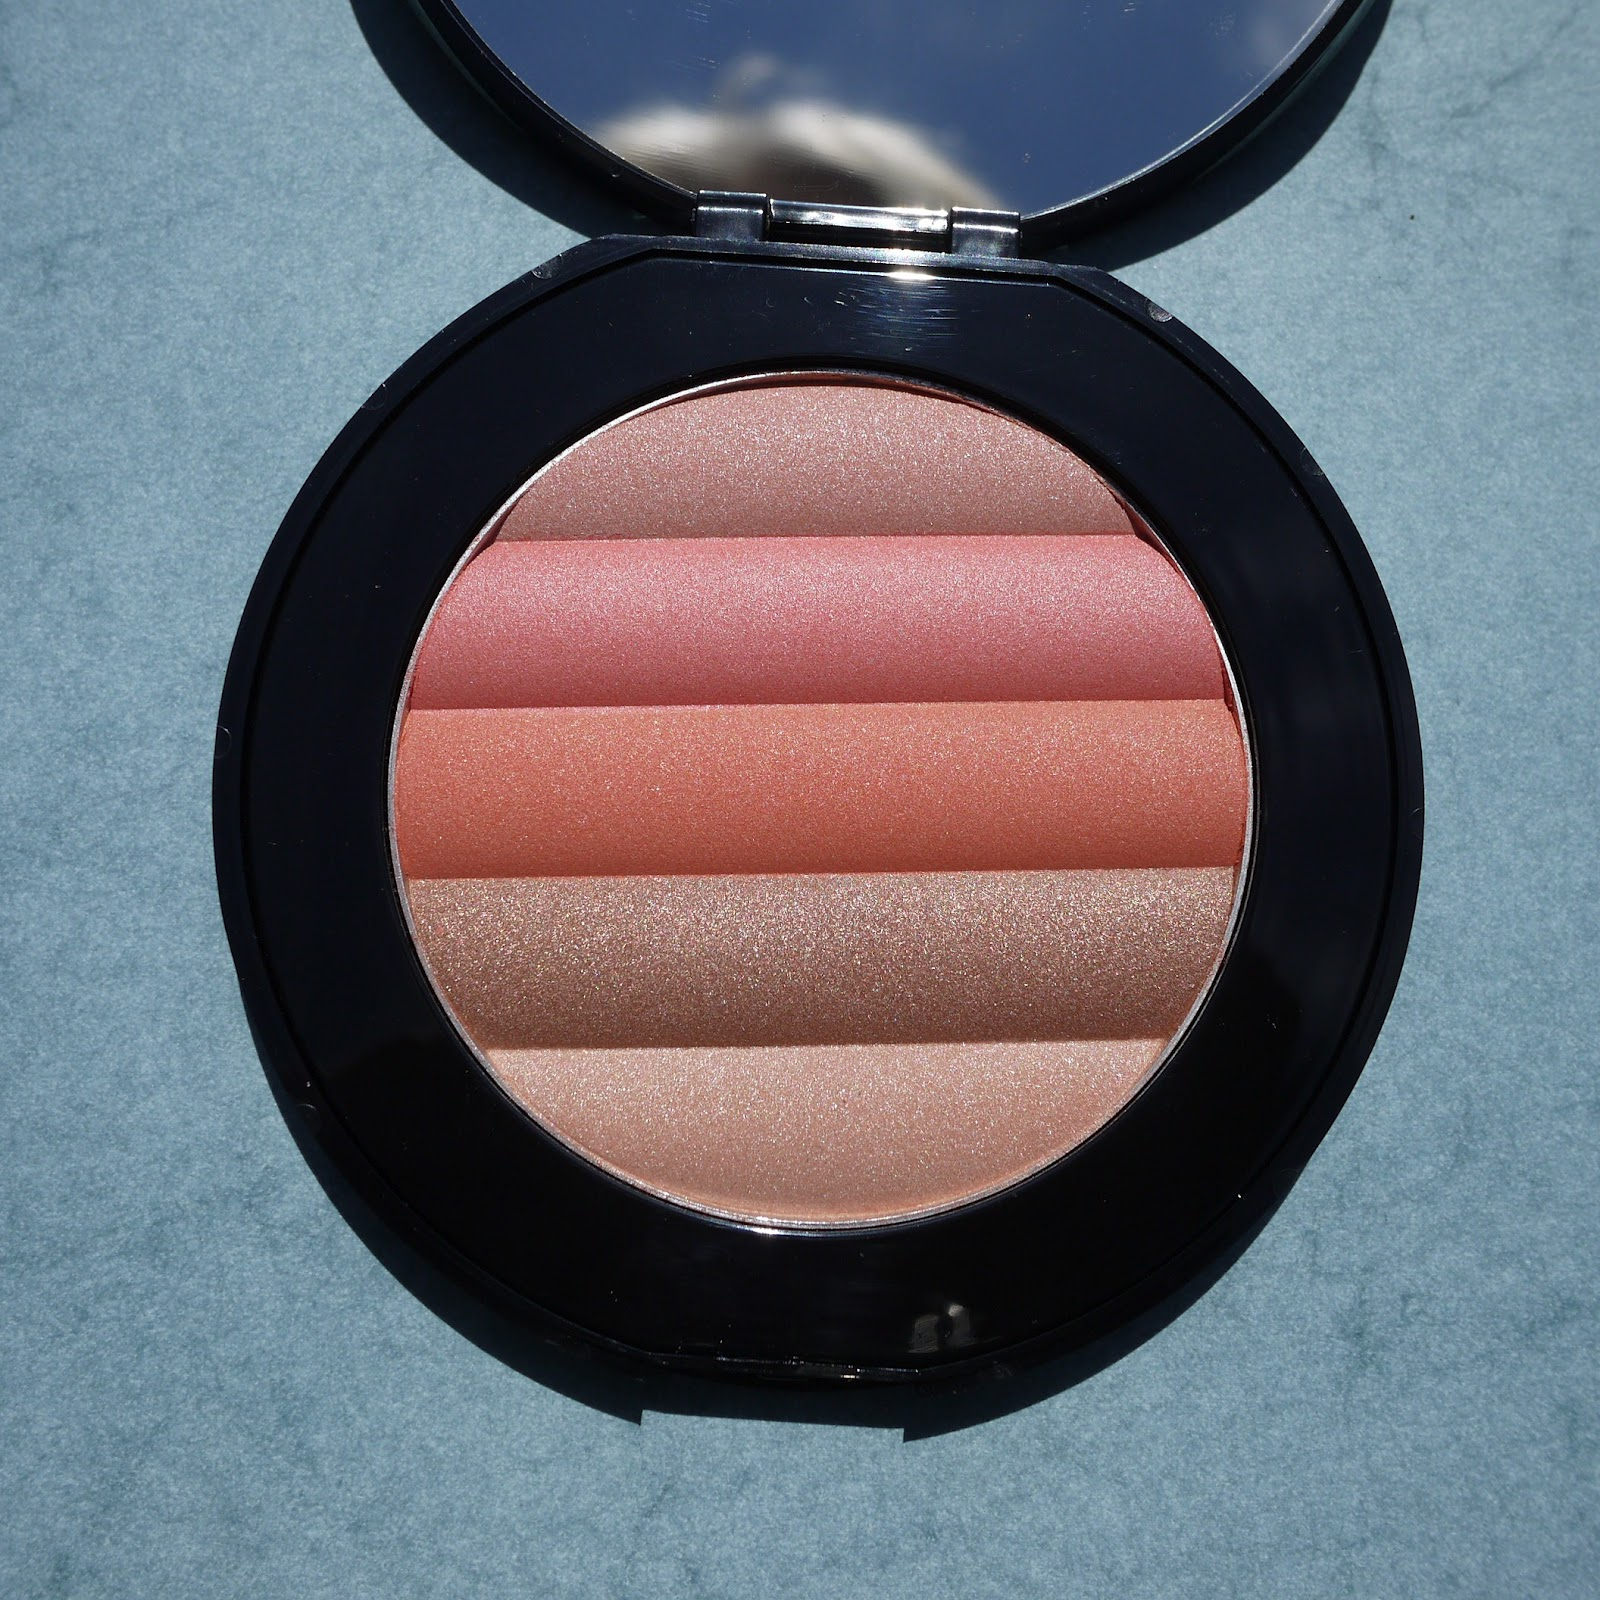 Best things in beauty sephora collection harmony face powder in youll find yourself using all colors blended for a luminous glow the stripes of color are so large though you can easily apply them individually to solutioingenieria Images